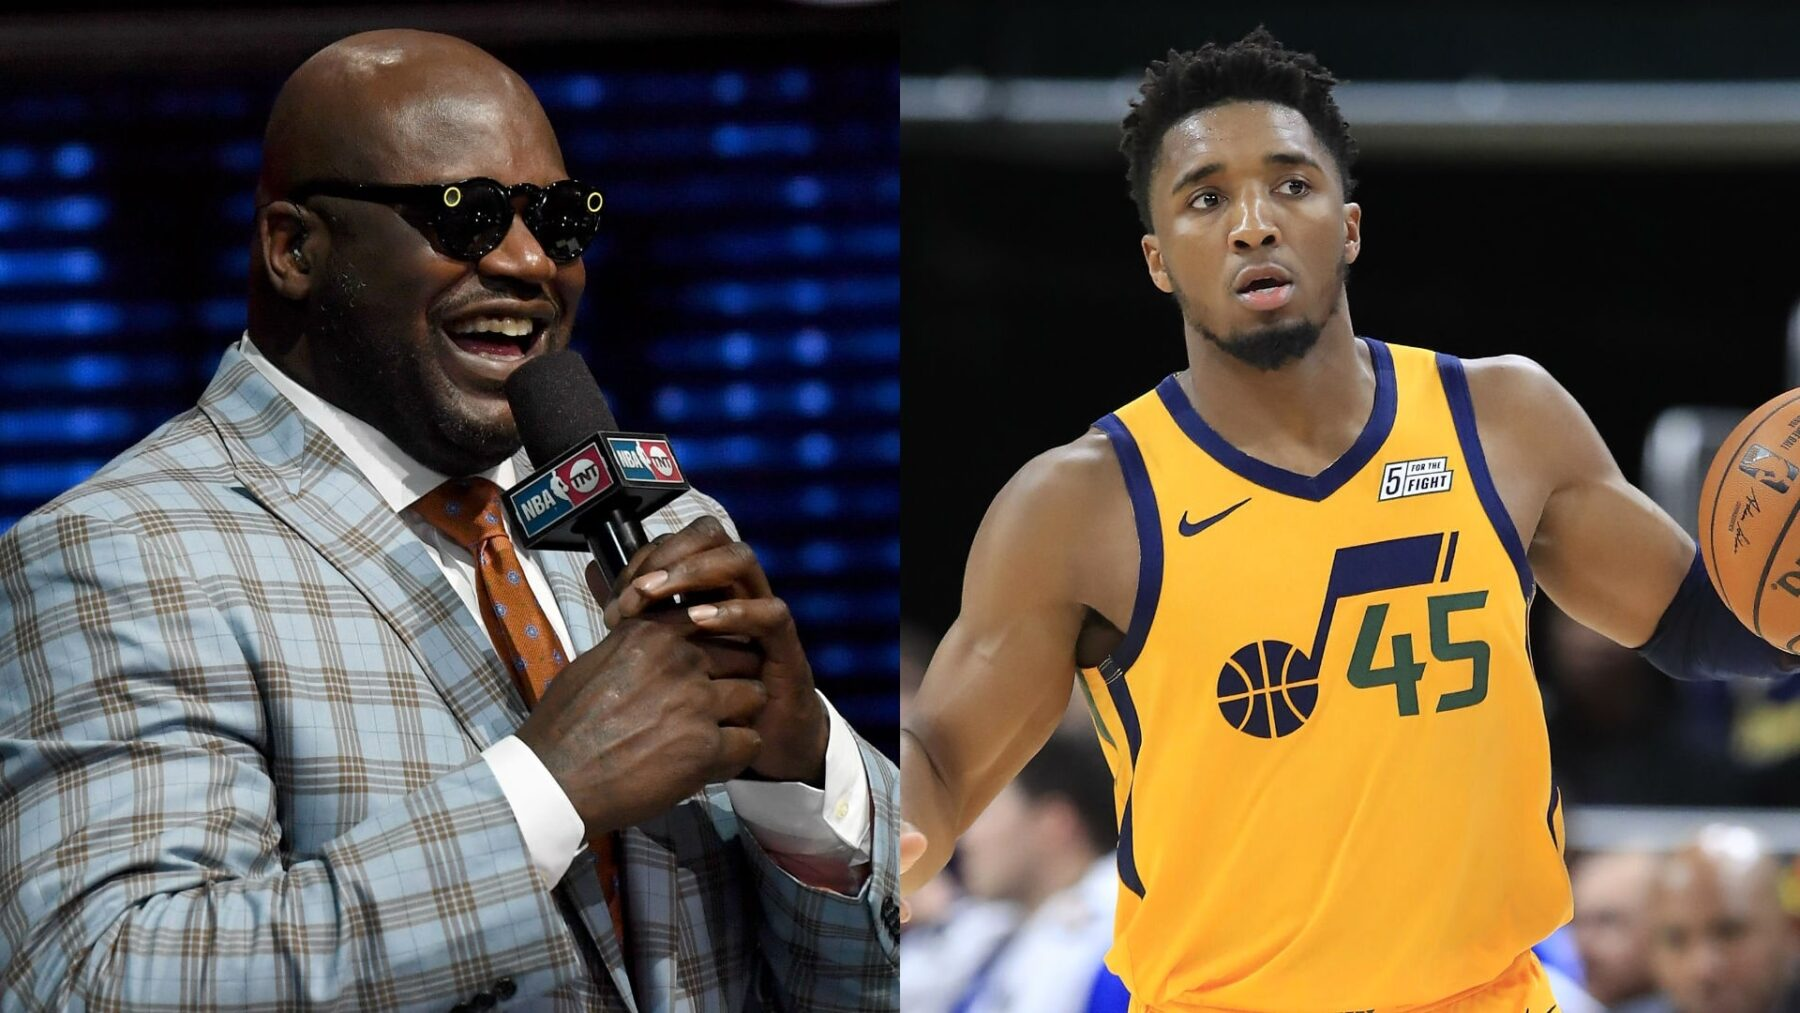 Shaq doubles down, challenges artist who Photoshopped Donovan Mitchell dunking on him to 1-on-1